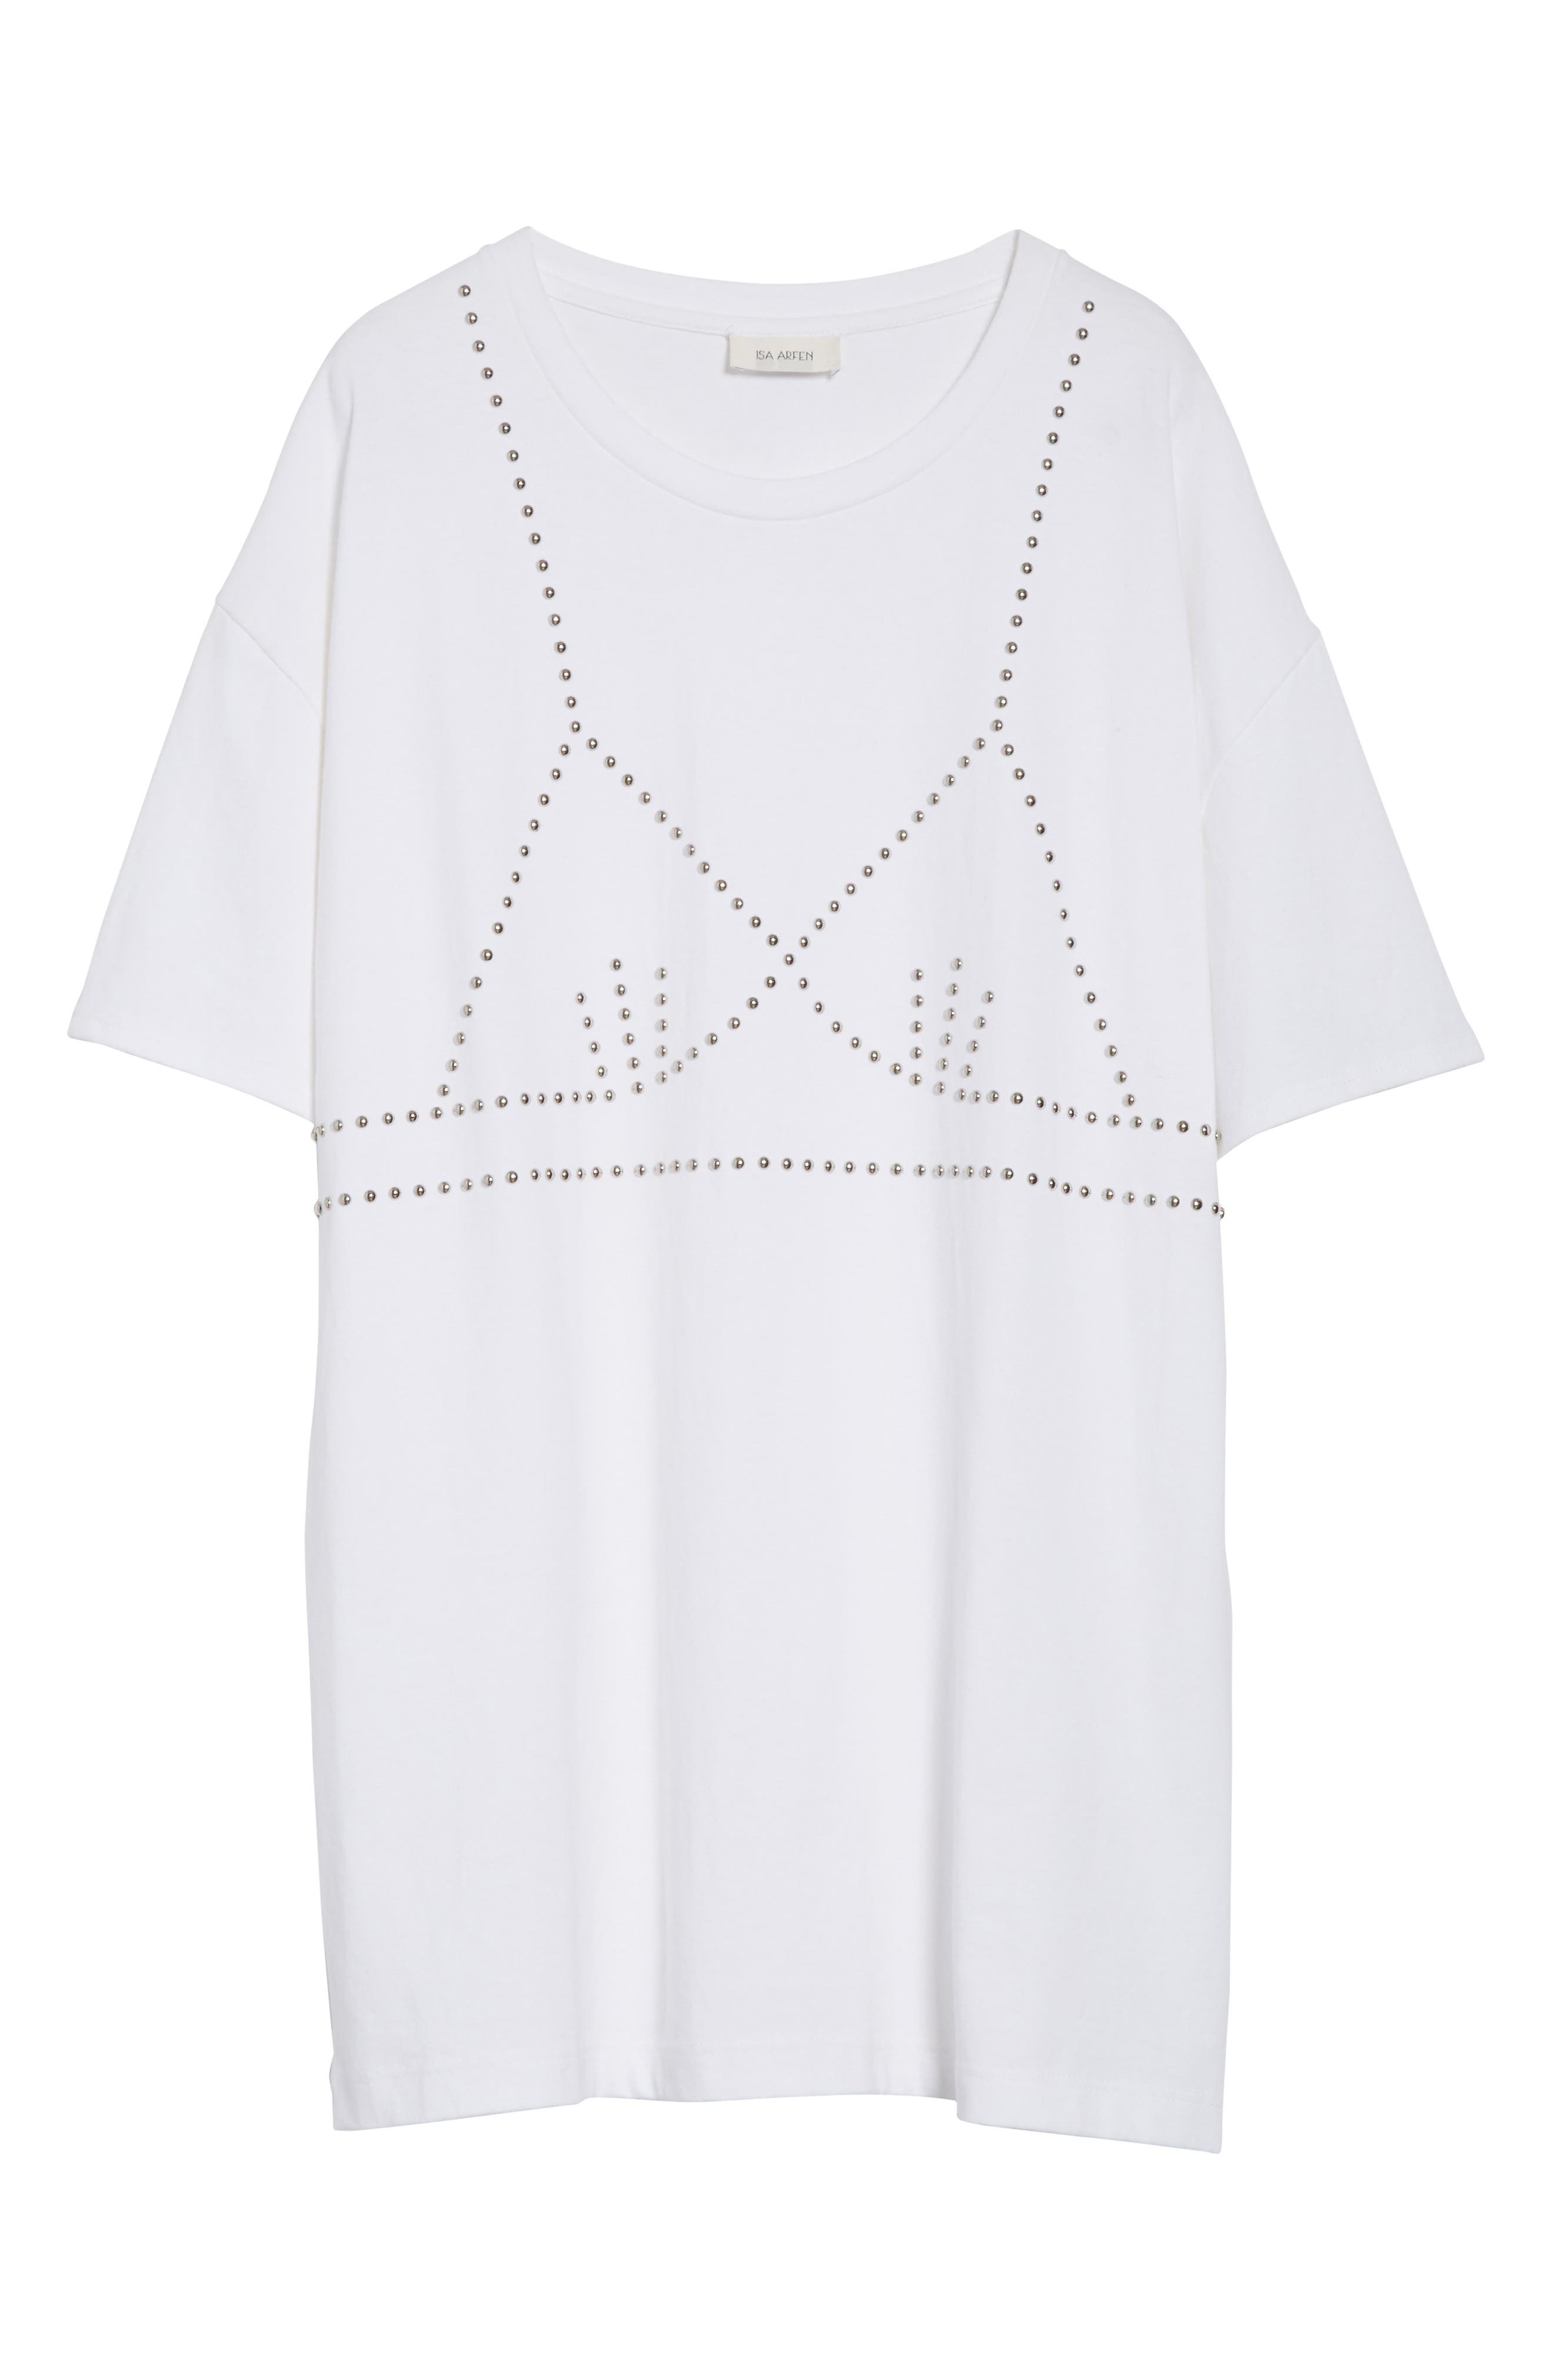 Oversize Studded Tee,                             Alternate thumbnail 6, color,                             100